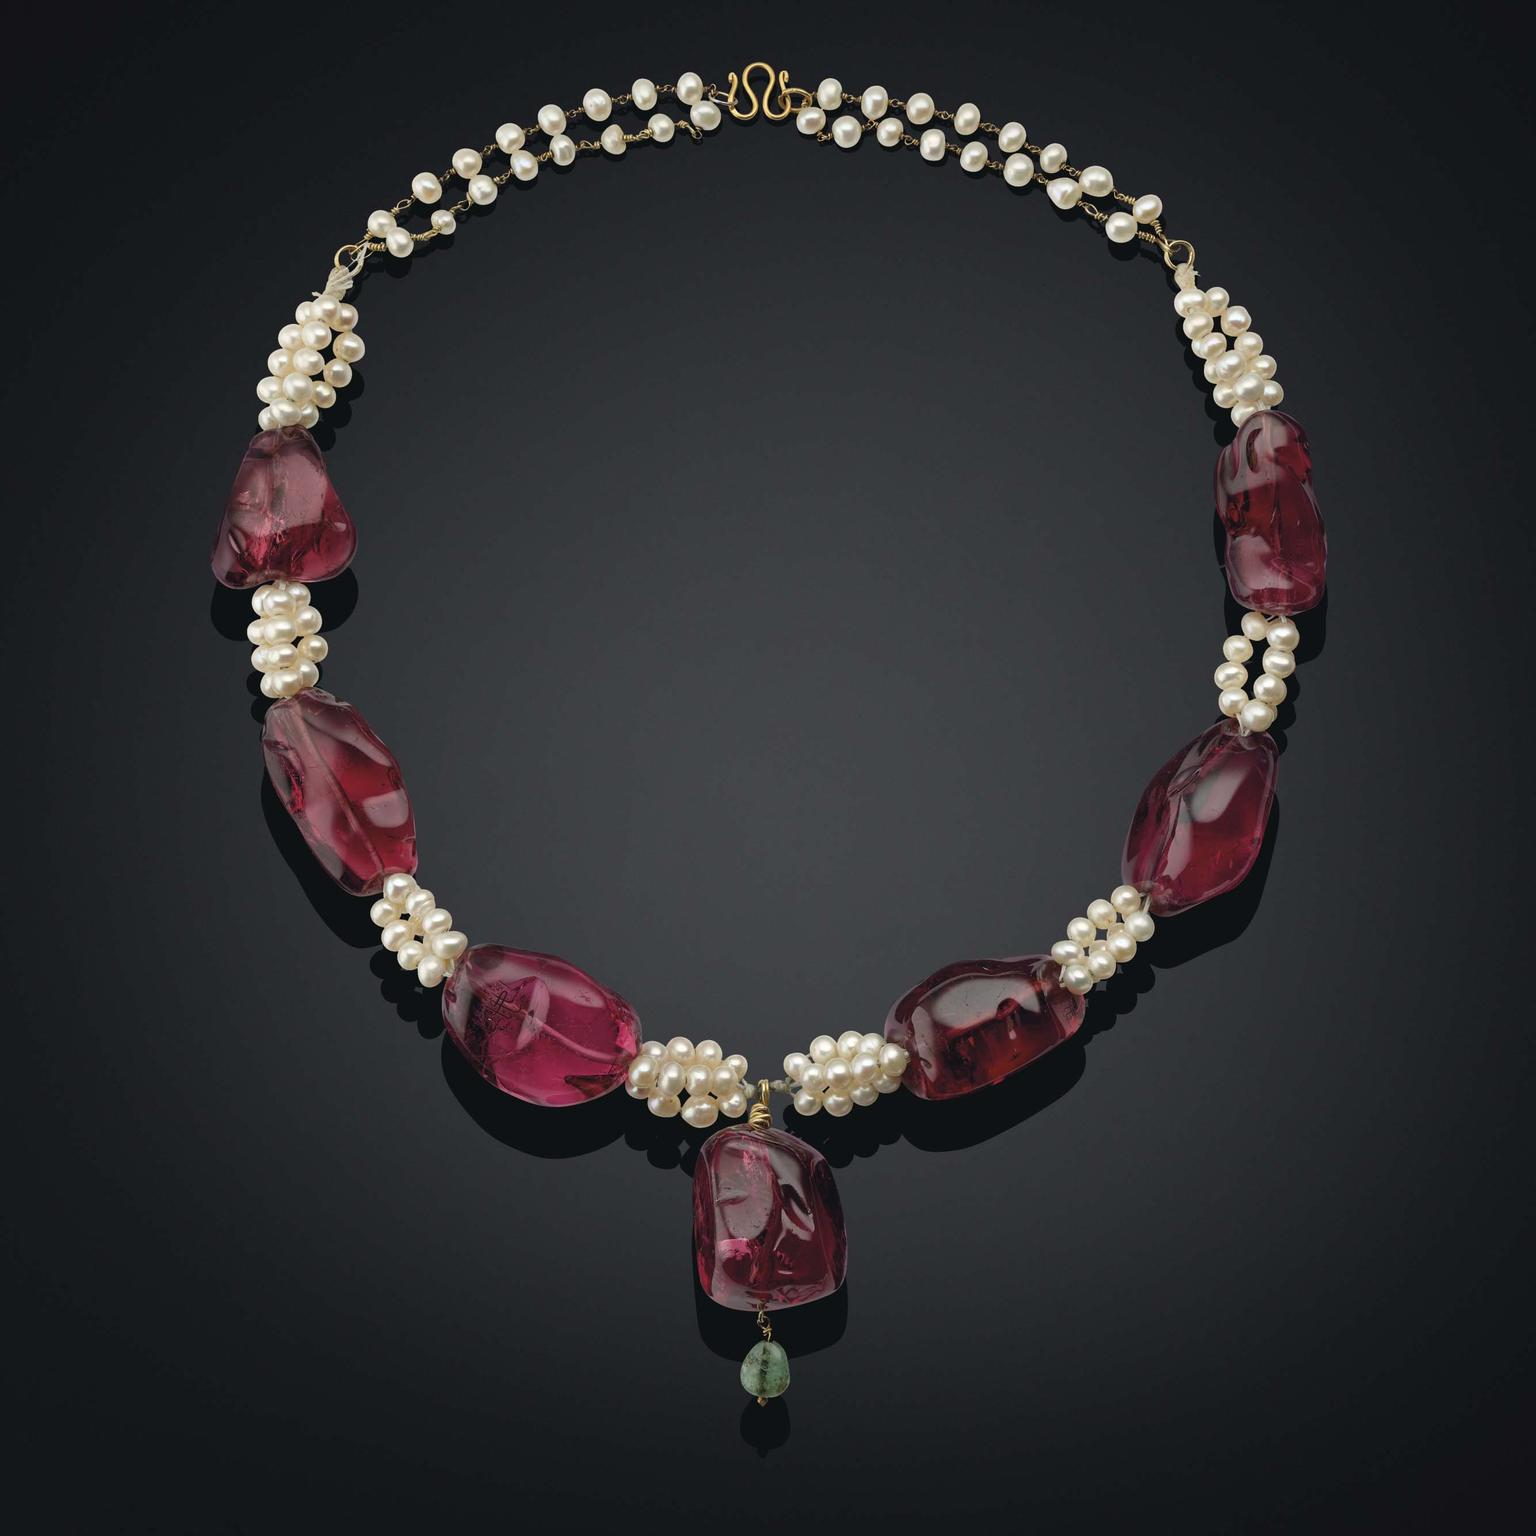 An Antique Imperial Spinel, Pearl and Emerald Necklace